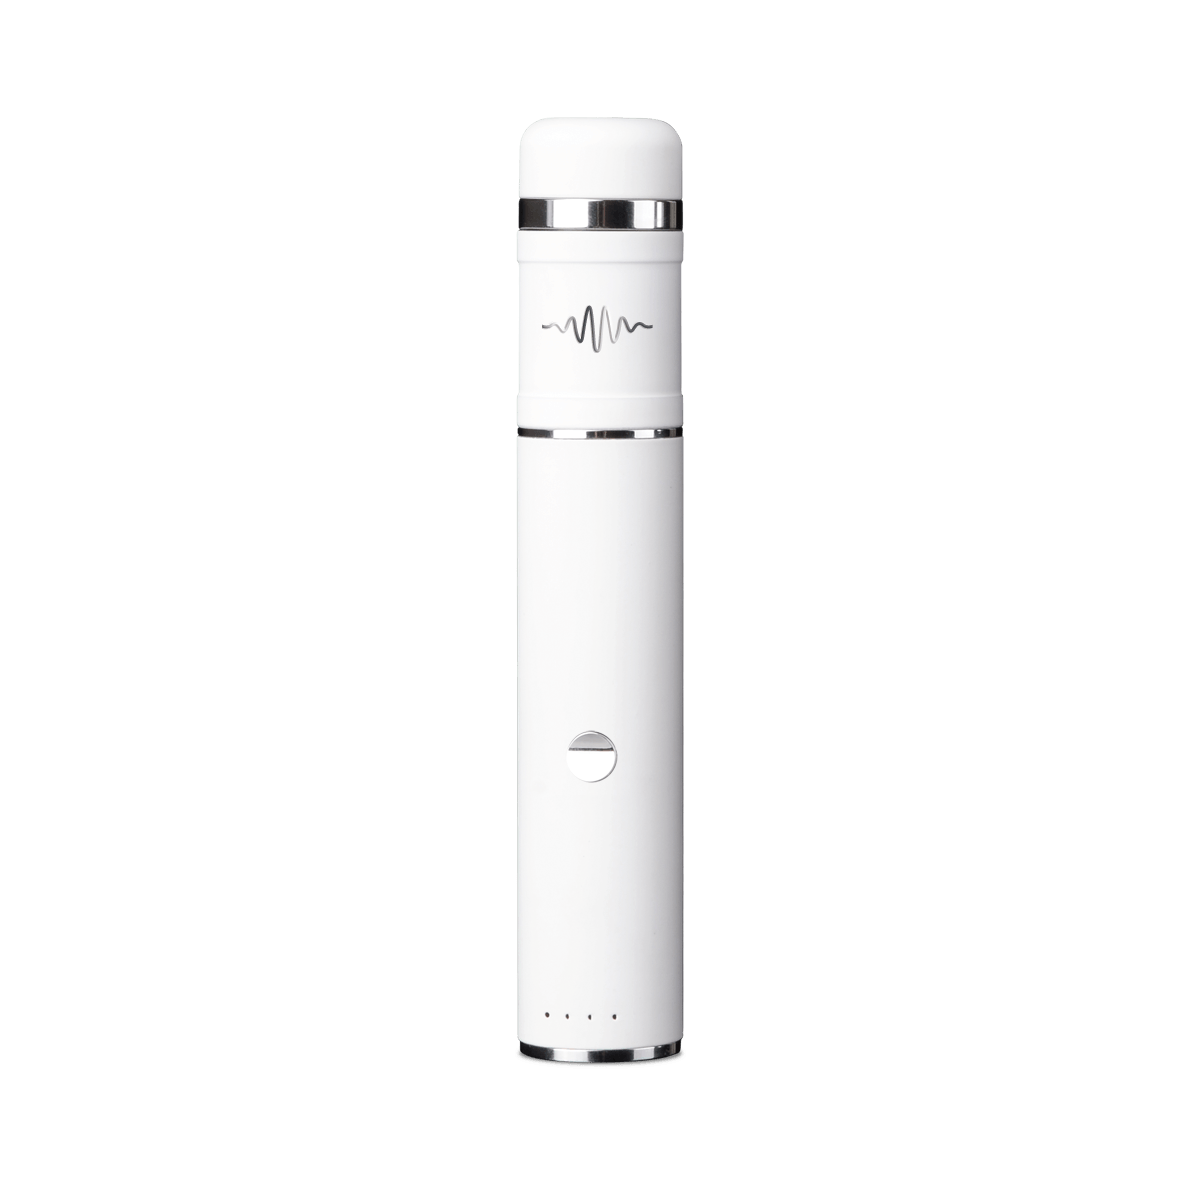 Quant Premium Electric Grinder - WHITE